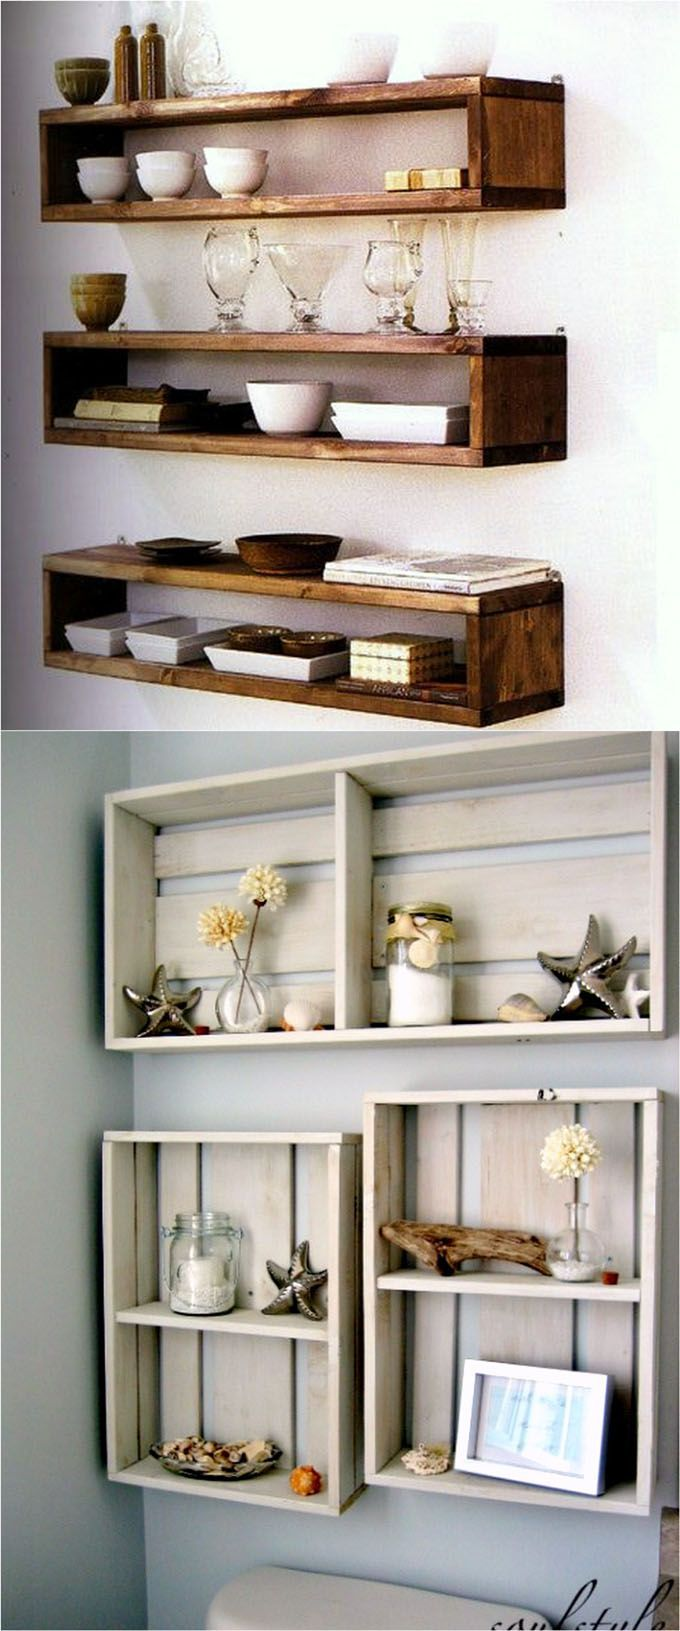 16 easy tutorials on building beautiful floating shelves and wall shelves! Check out all the gorgeous brackets, supports, finishes & design inspirations! - A Piece Of Rainbow